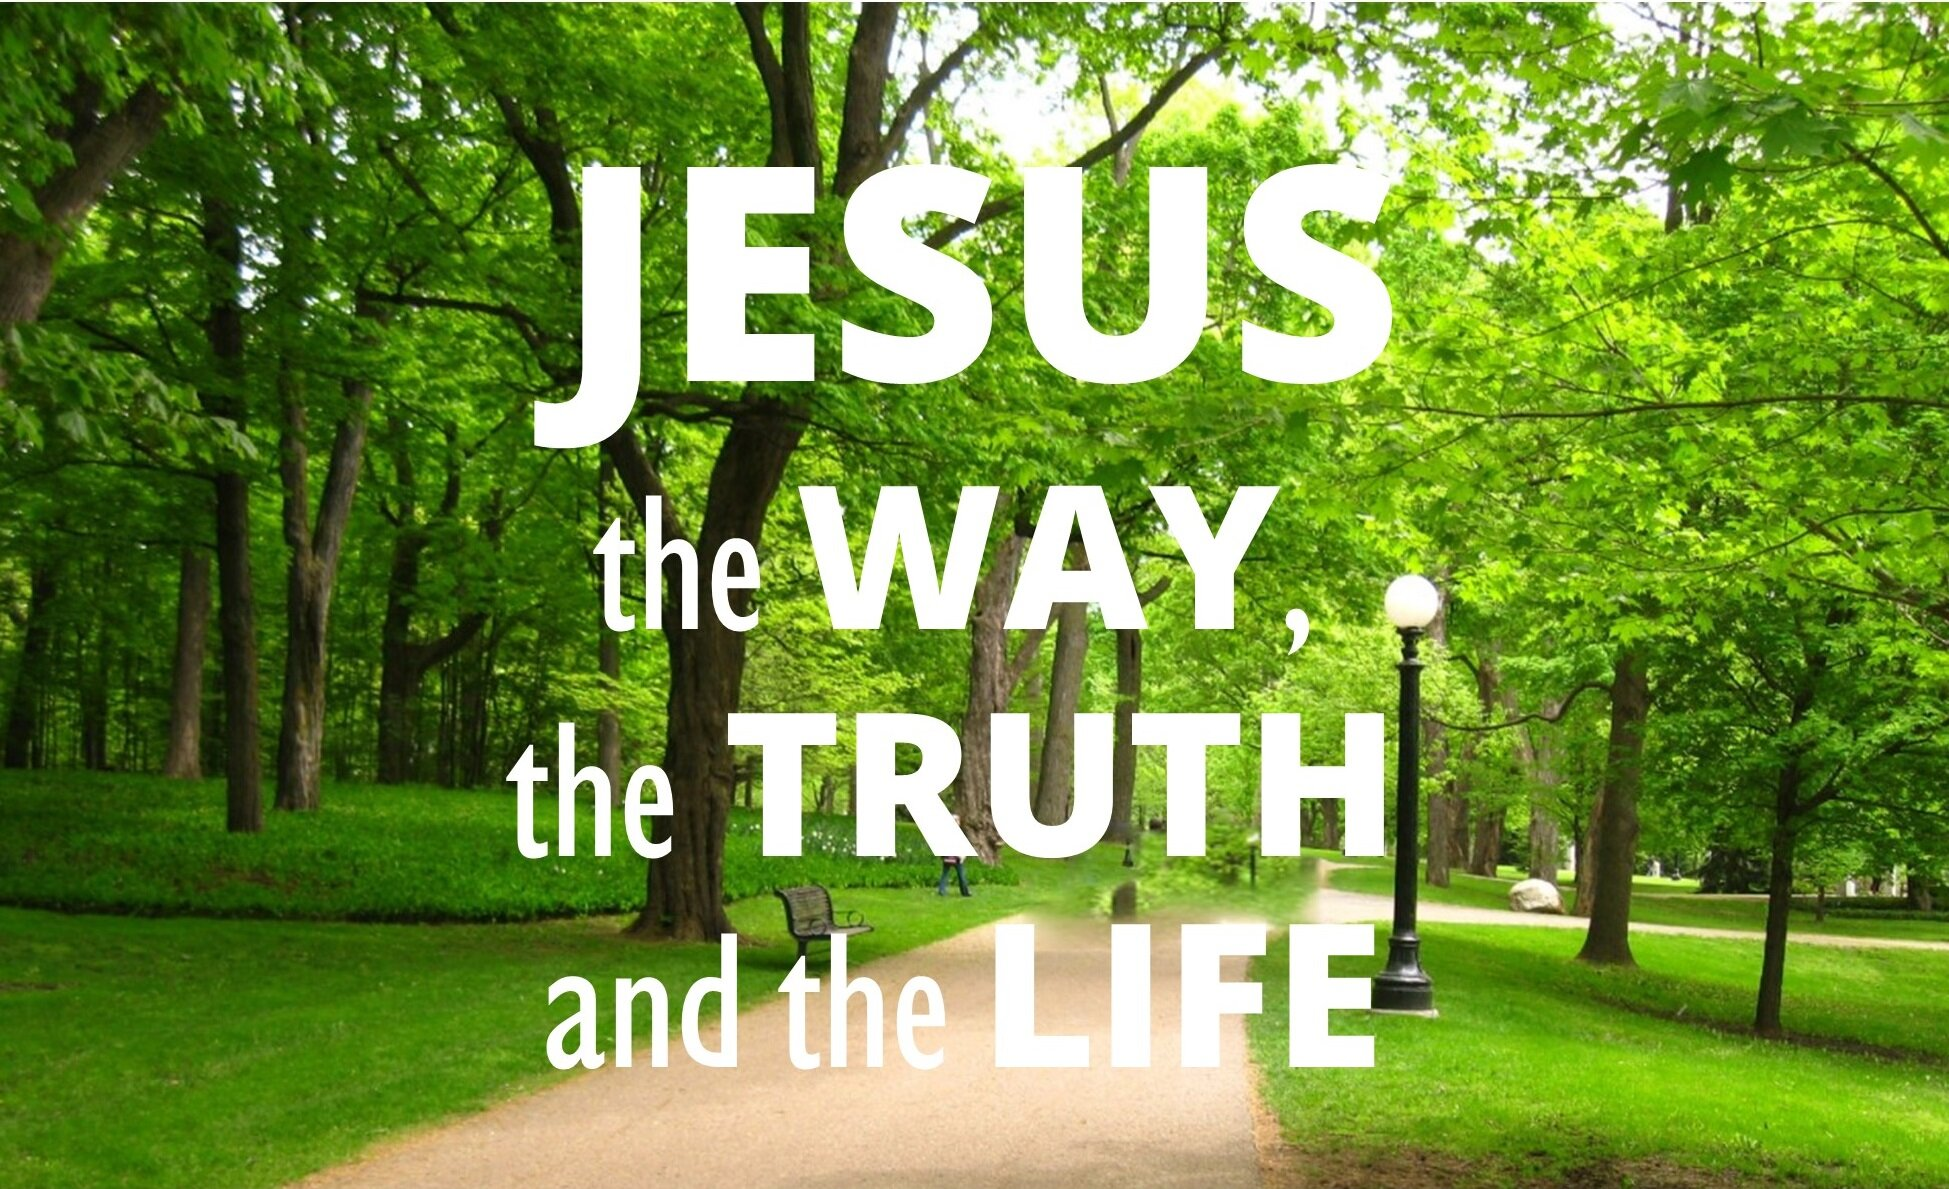 Jesus the way the truth and the life.jpg